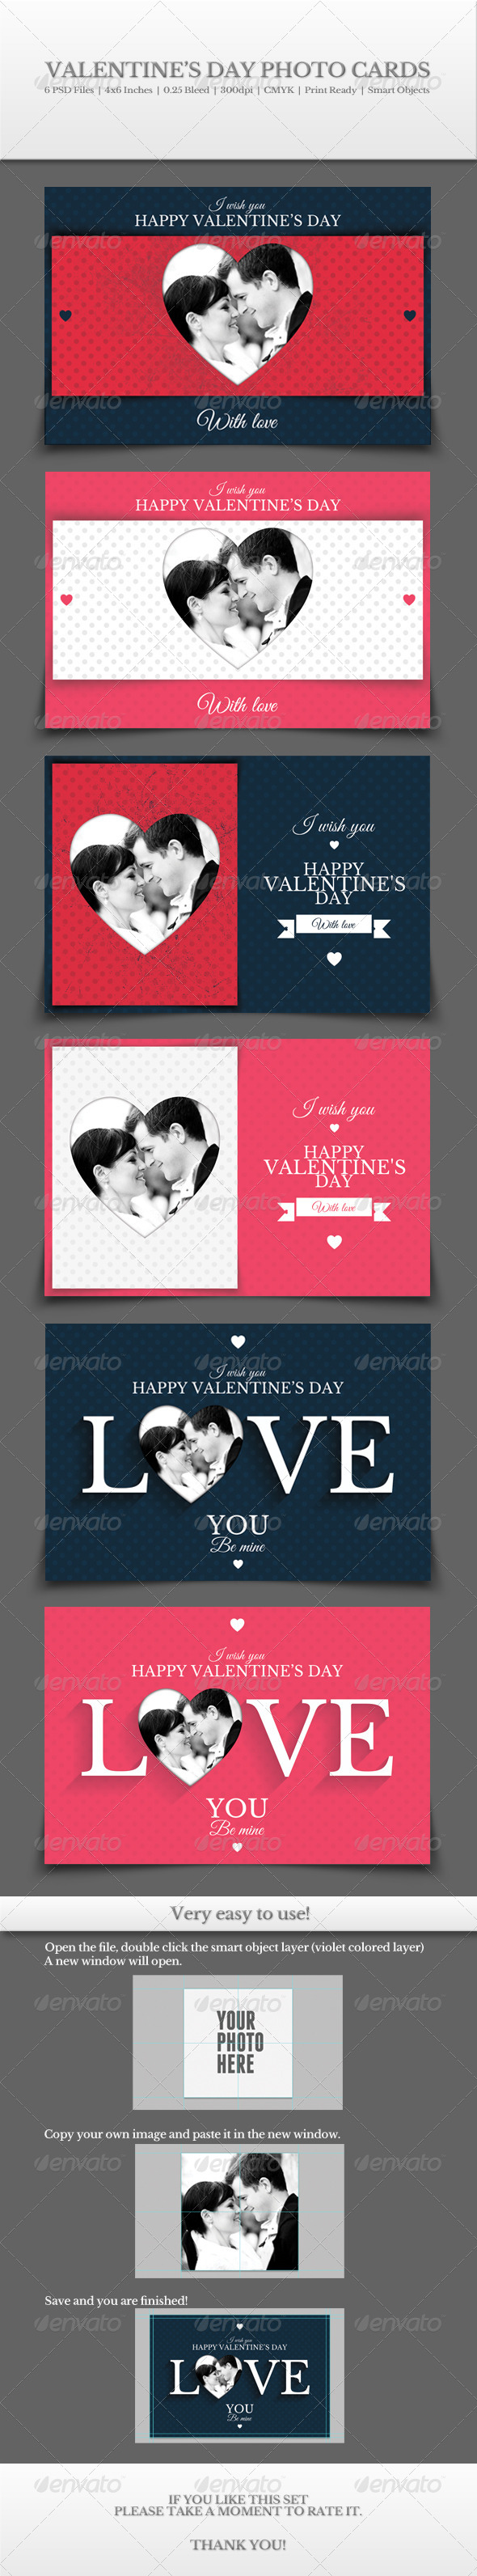 GraphicRiver Valentine s Day Photo Cards 6527850